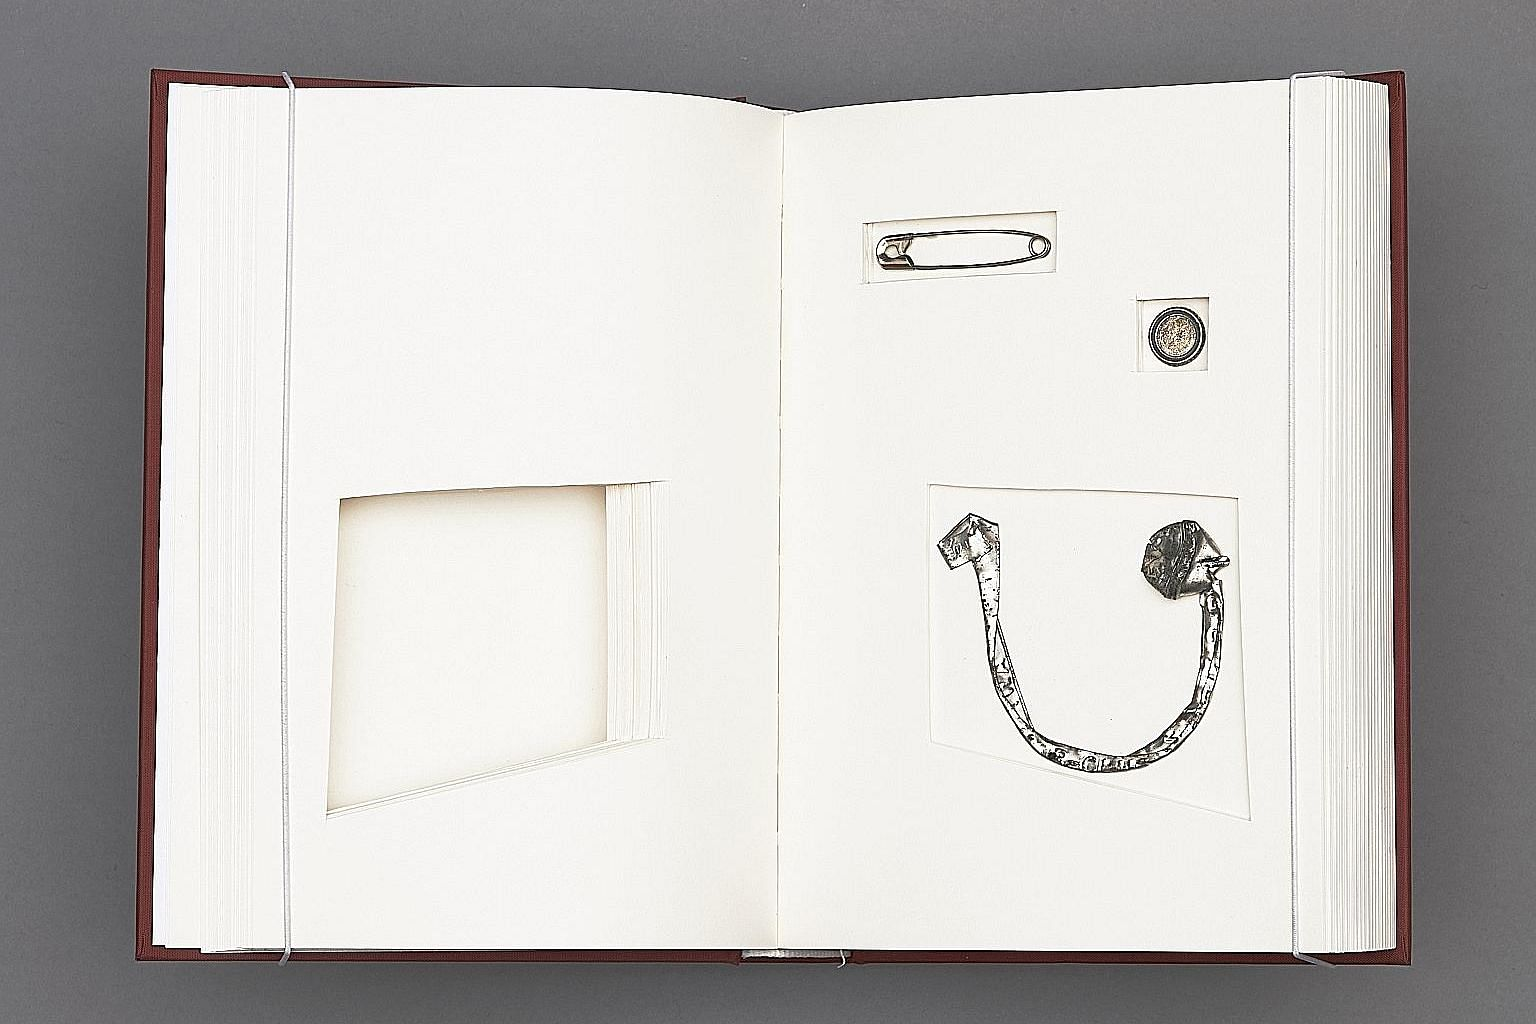 Above: Lucy Liu creates art using found objects and books. Left: Lost And Found (Book 3).